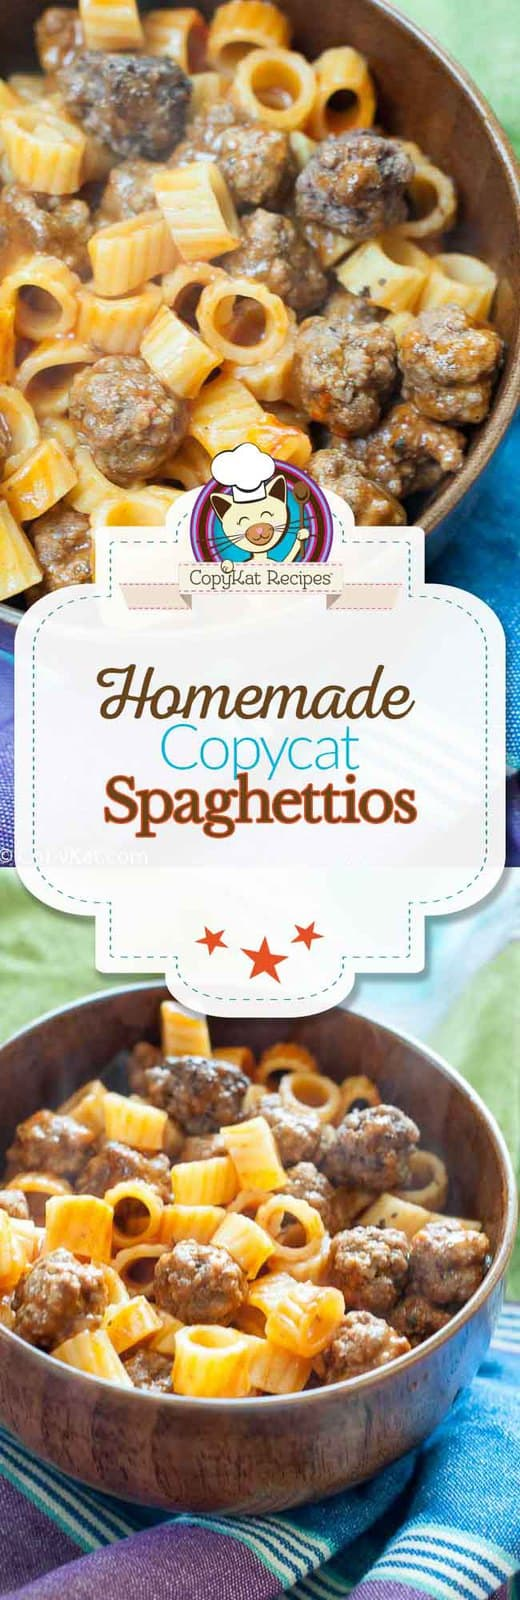 You can make tasty homemade Spaghettios with this easy recipe.